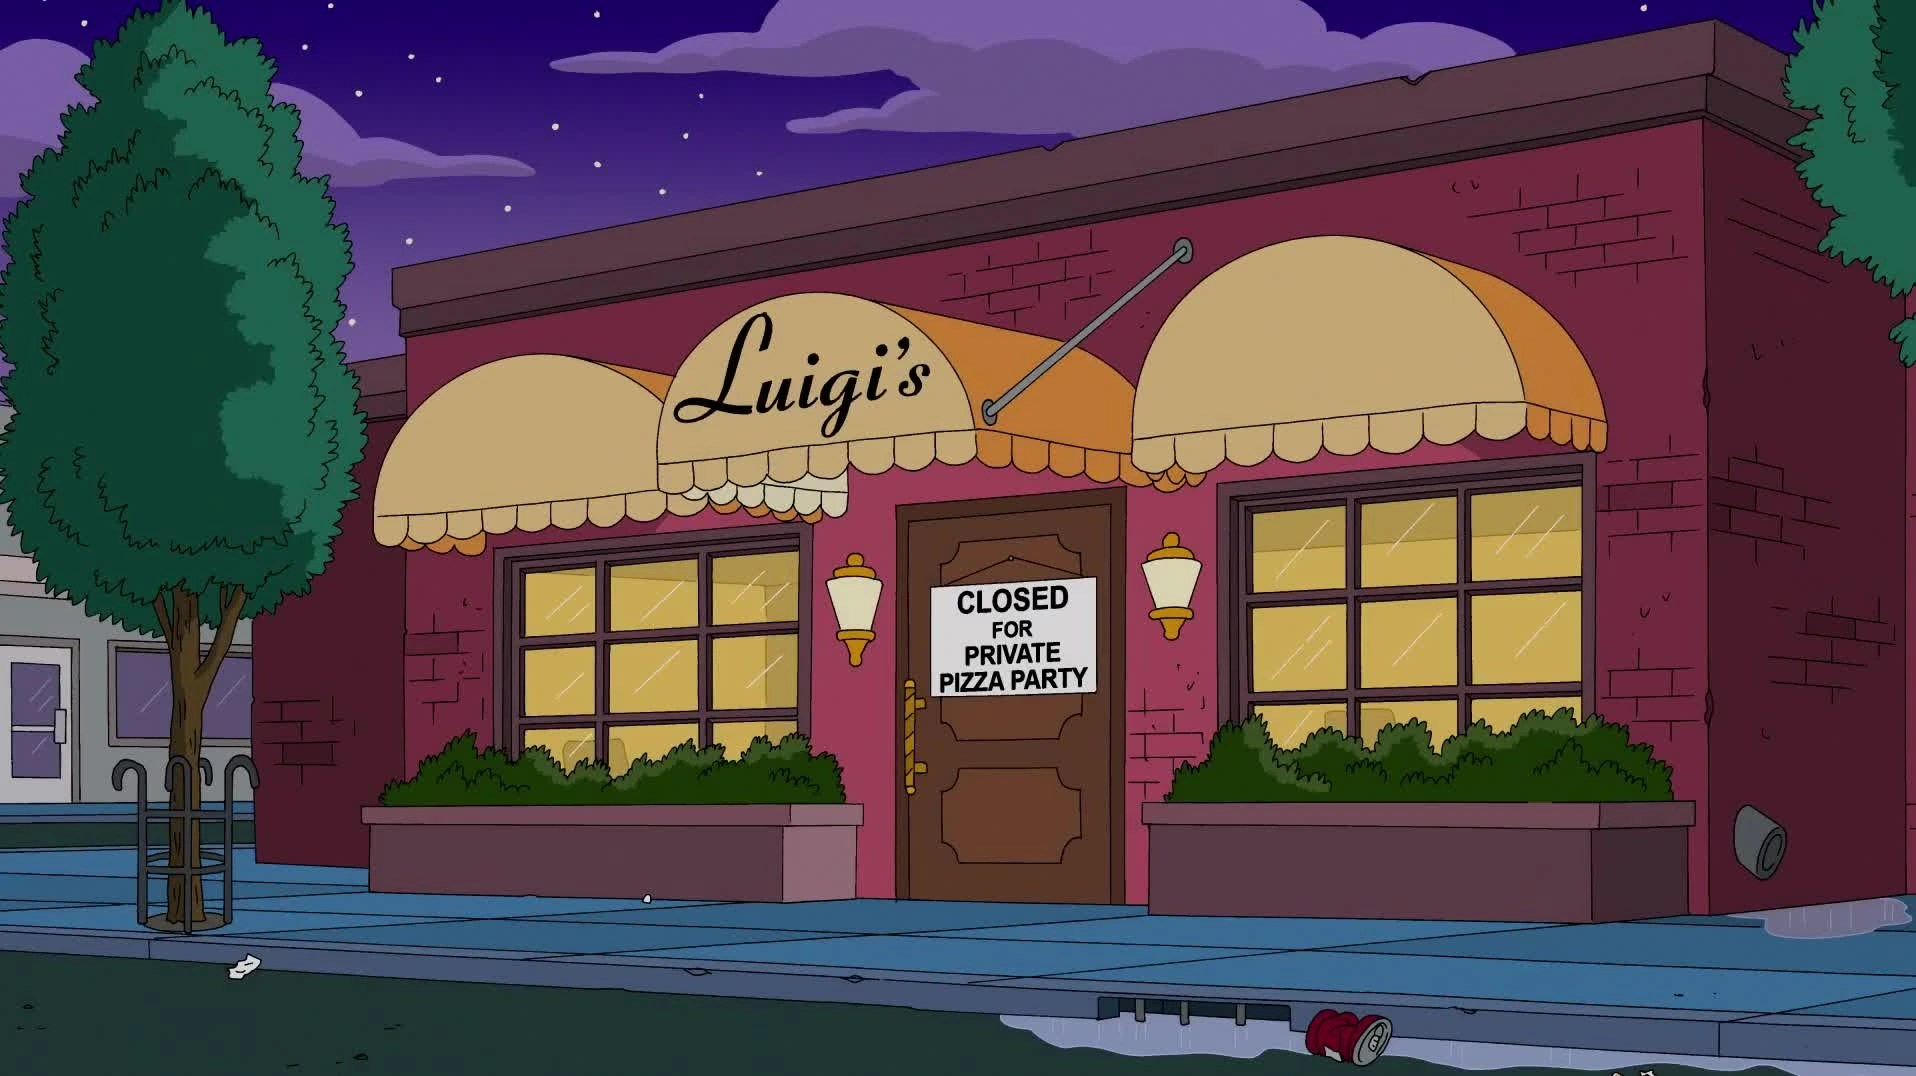 Sushi Restaurant Houten Image - Luigi's.png | Simpsons Wiki | Fandom Powered By Wikia